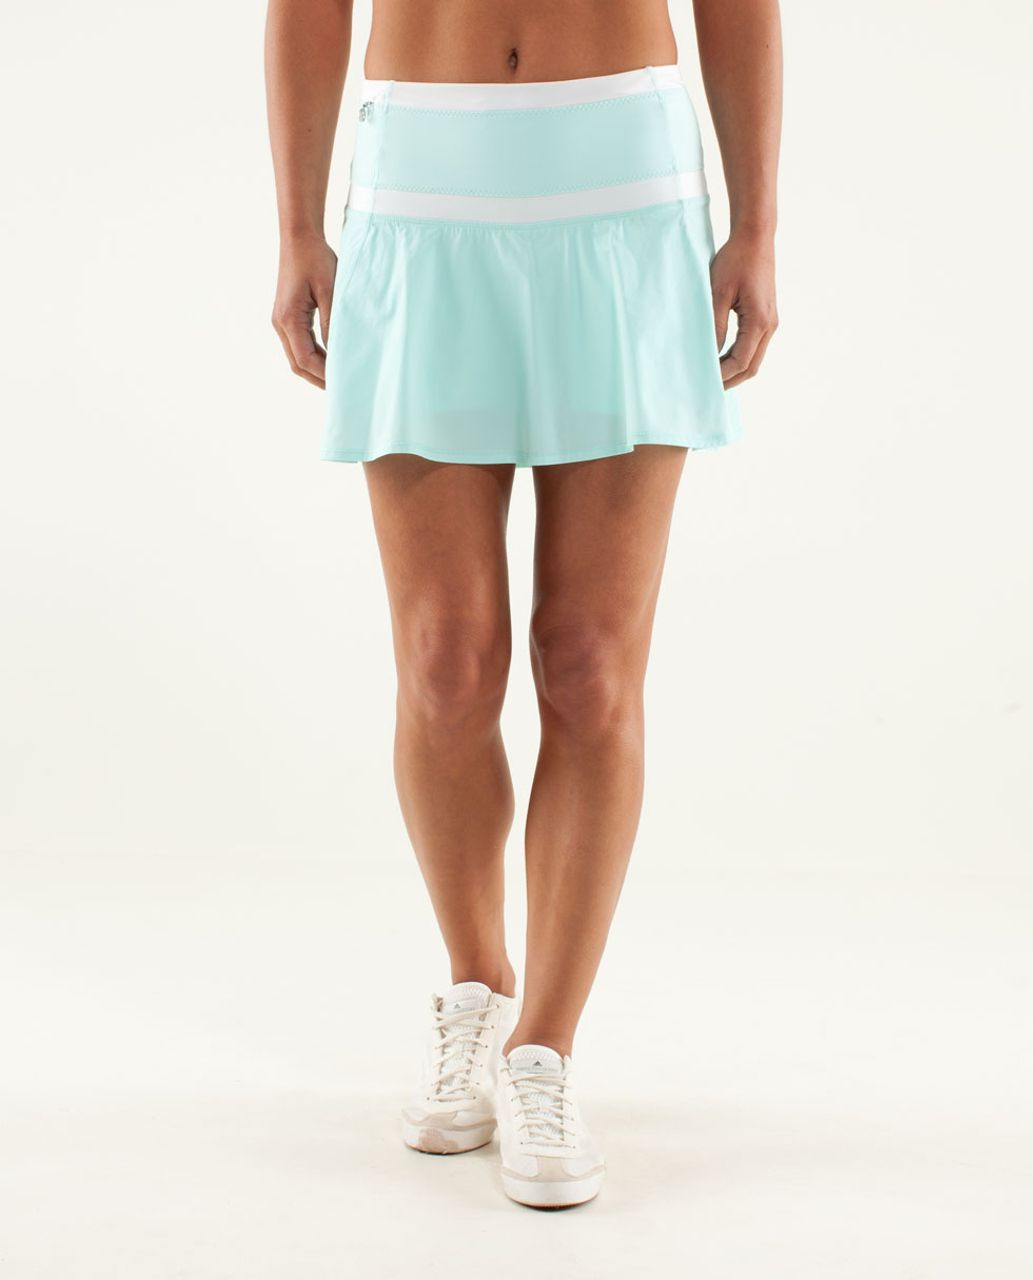 f2ecdd1125 Lululemon Hot Hitter Skirt - Aquamarine / White - lulu fanatics